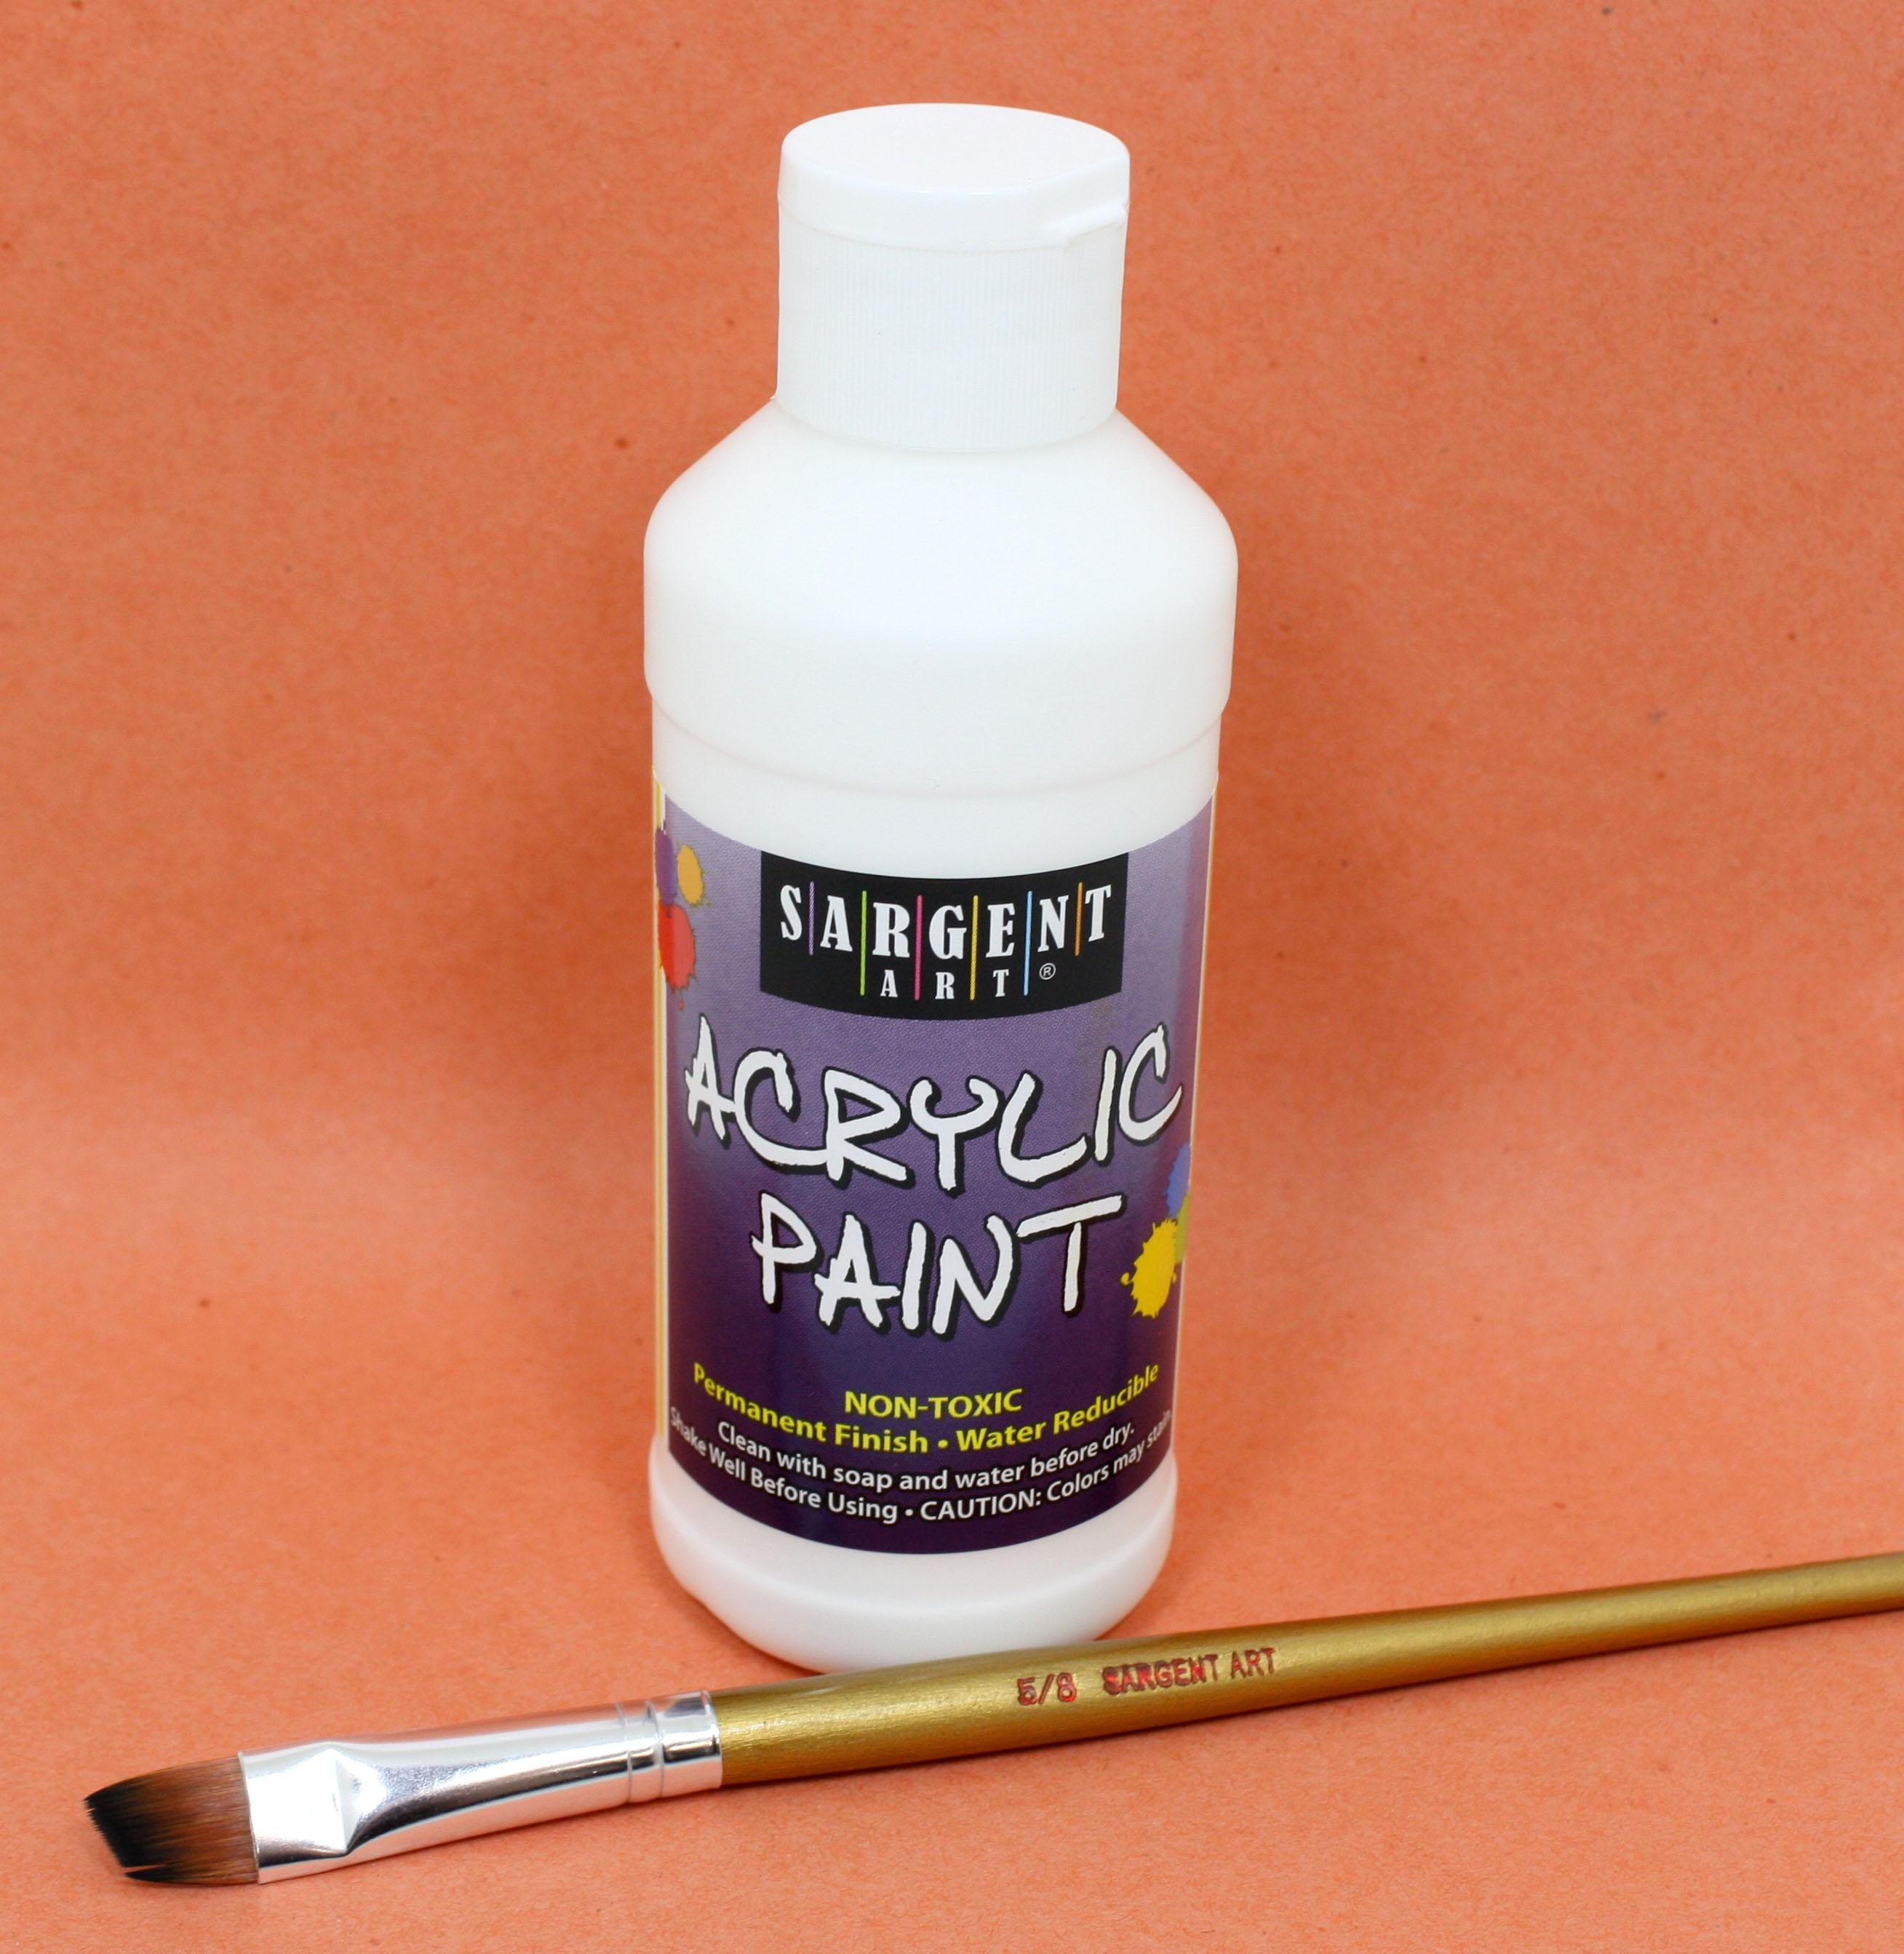 Sargent art 22 2396 8 ounce acrylic paint white for Acrylic paint water resistant